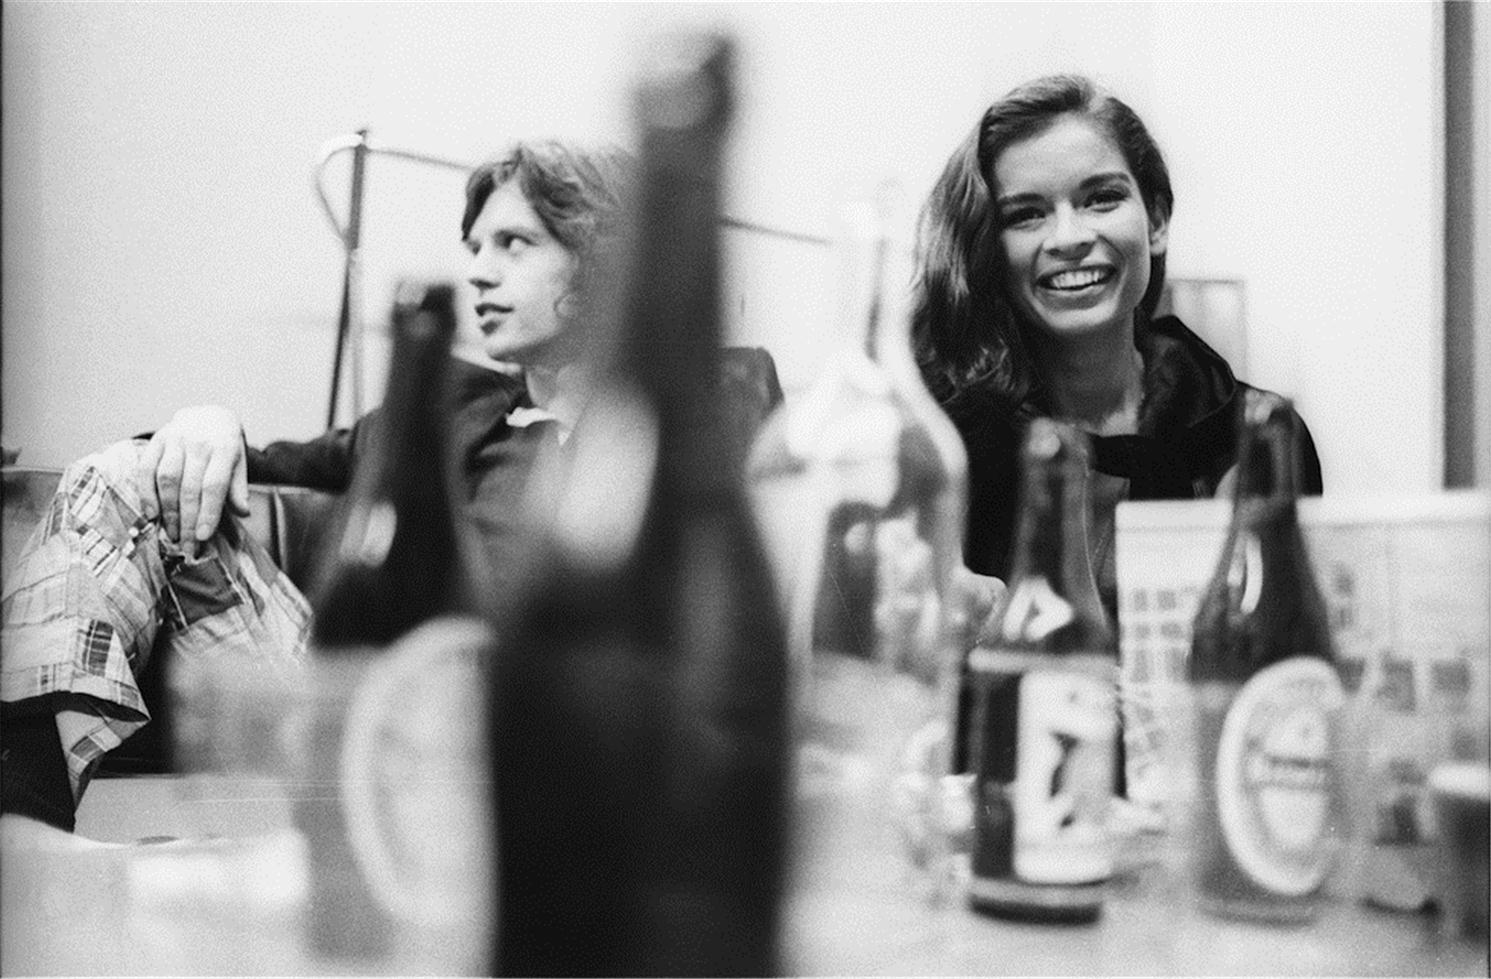 """©  Henry Diltz, 1970   Backstage after a Rolling Stones concert in Amsterdam on October 9, 1970. Henry was trying to photograph Mick through the bottles on the table so he wouldn't notice.  """"Some girl next to him kept watching me and smiling, which made it hard for me to hide what I was doing. Later I learned she was his girlfriend, Bianca."""" -Henry Diltz"""